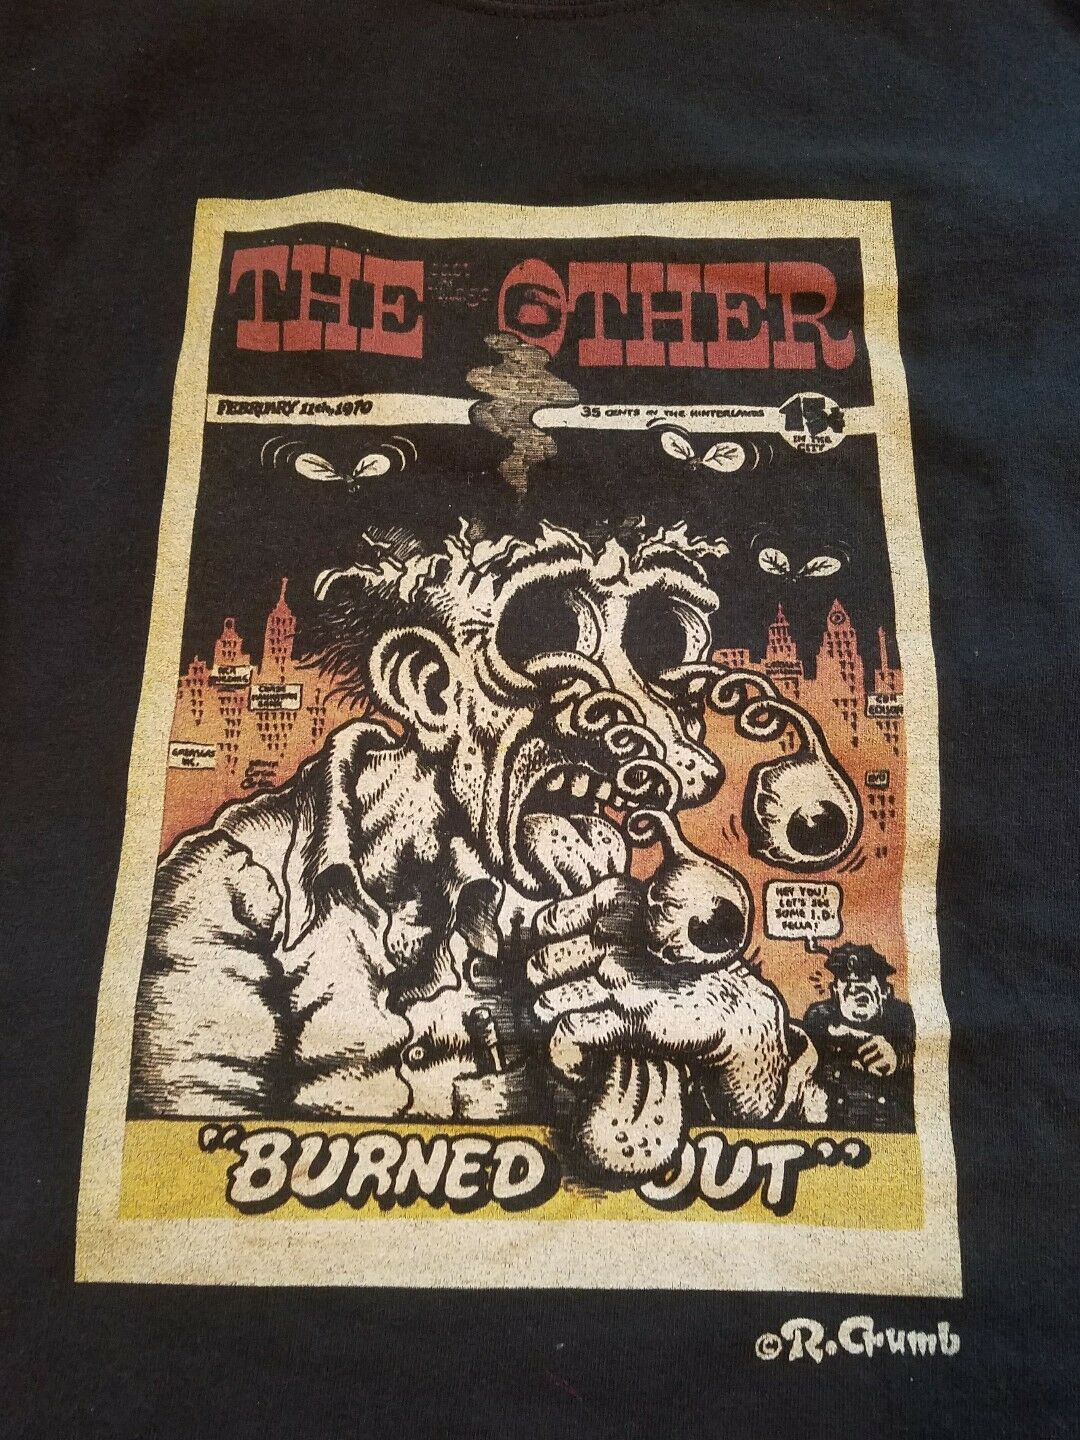 Vintage R. Crumb Burned Out Party Supreme Fritz Cat Large T-shirt 90s Comic